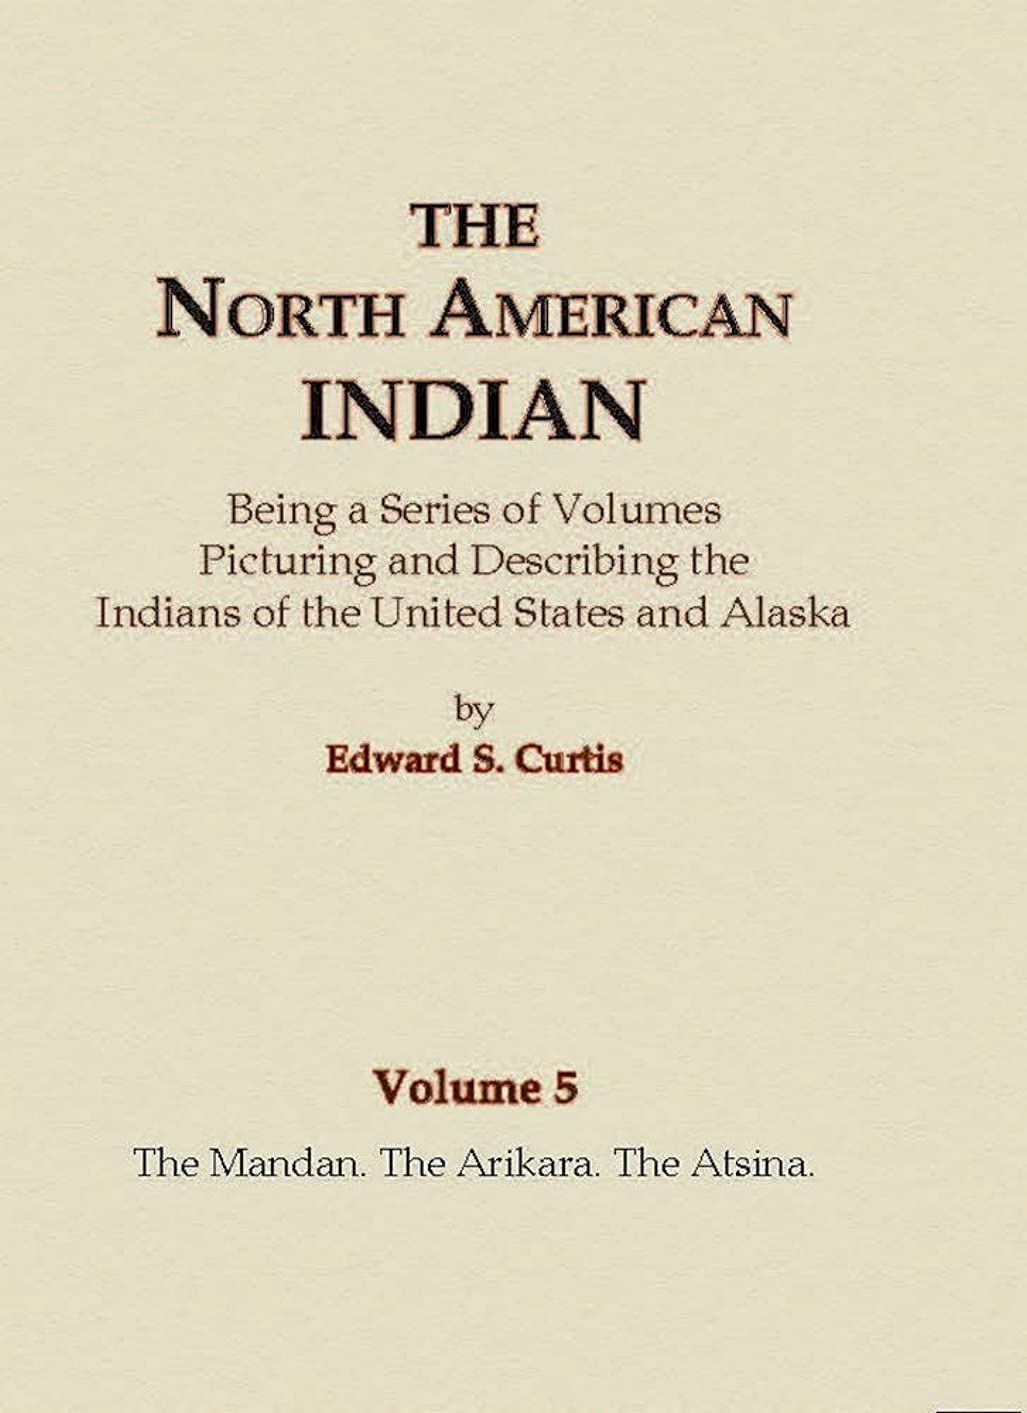 すべき強調無視できるThe Mandan, The Arikara, The Atsina (The North American Indian Book 5) (English Edition)